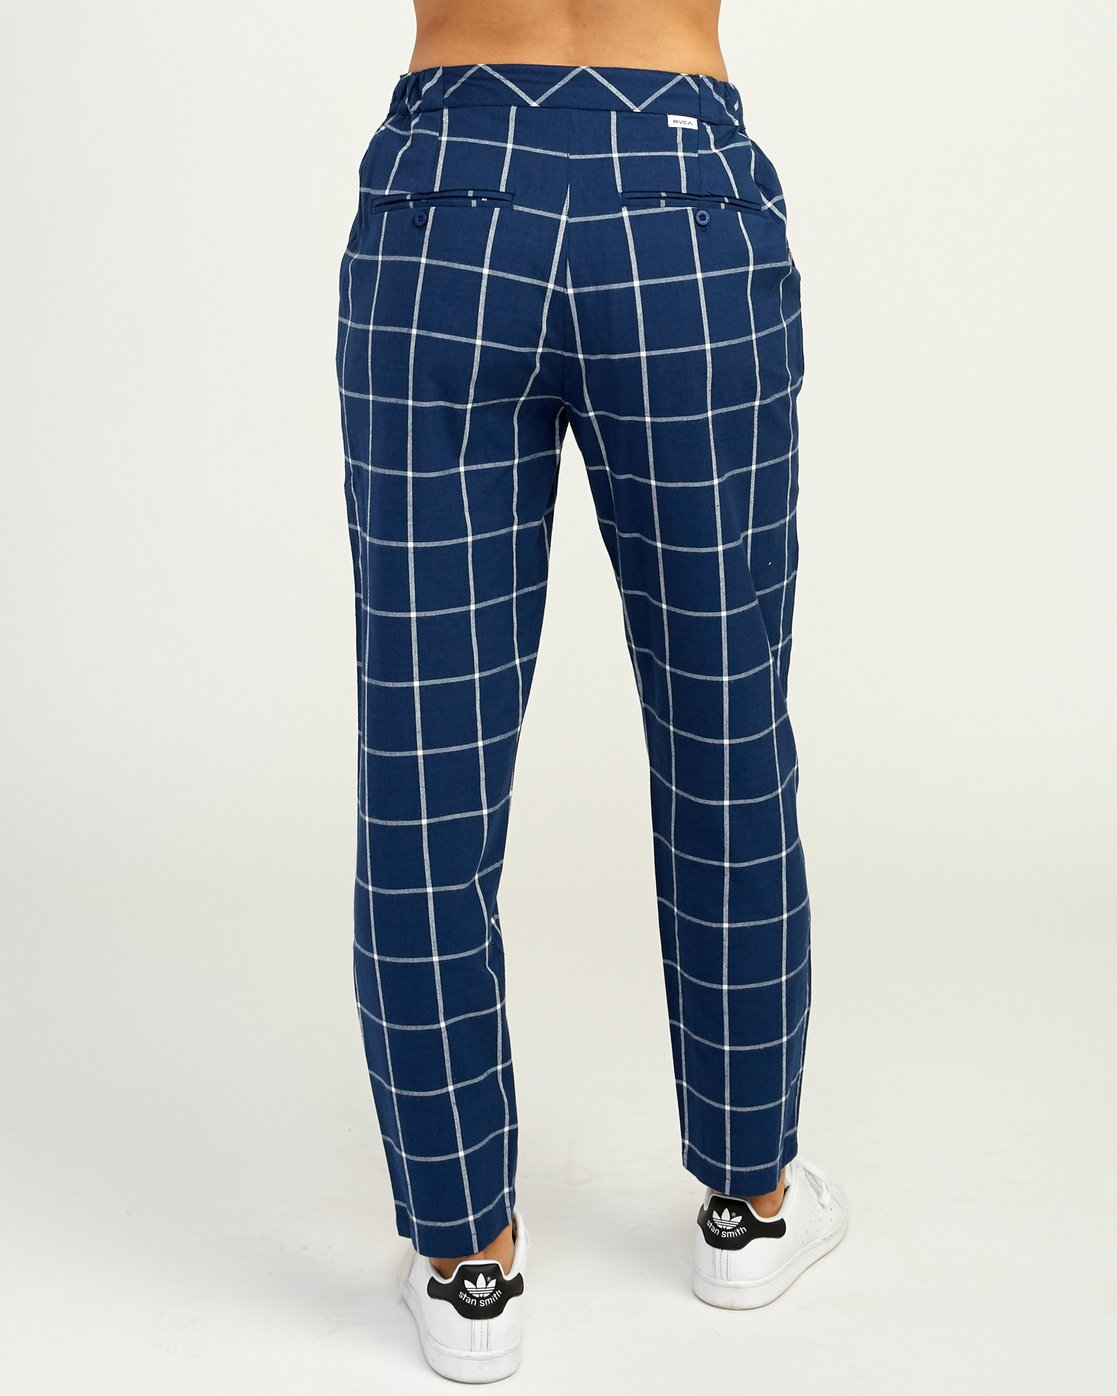 5 Hey Now - Grid Trousers for Women Blue N3PTRDRVP9 RVCA